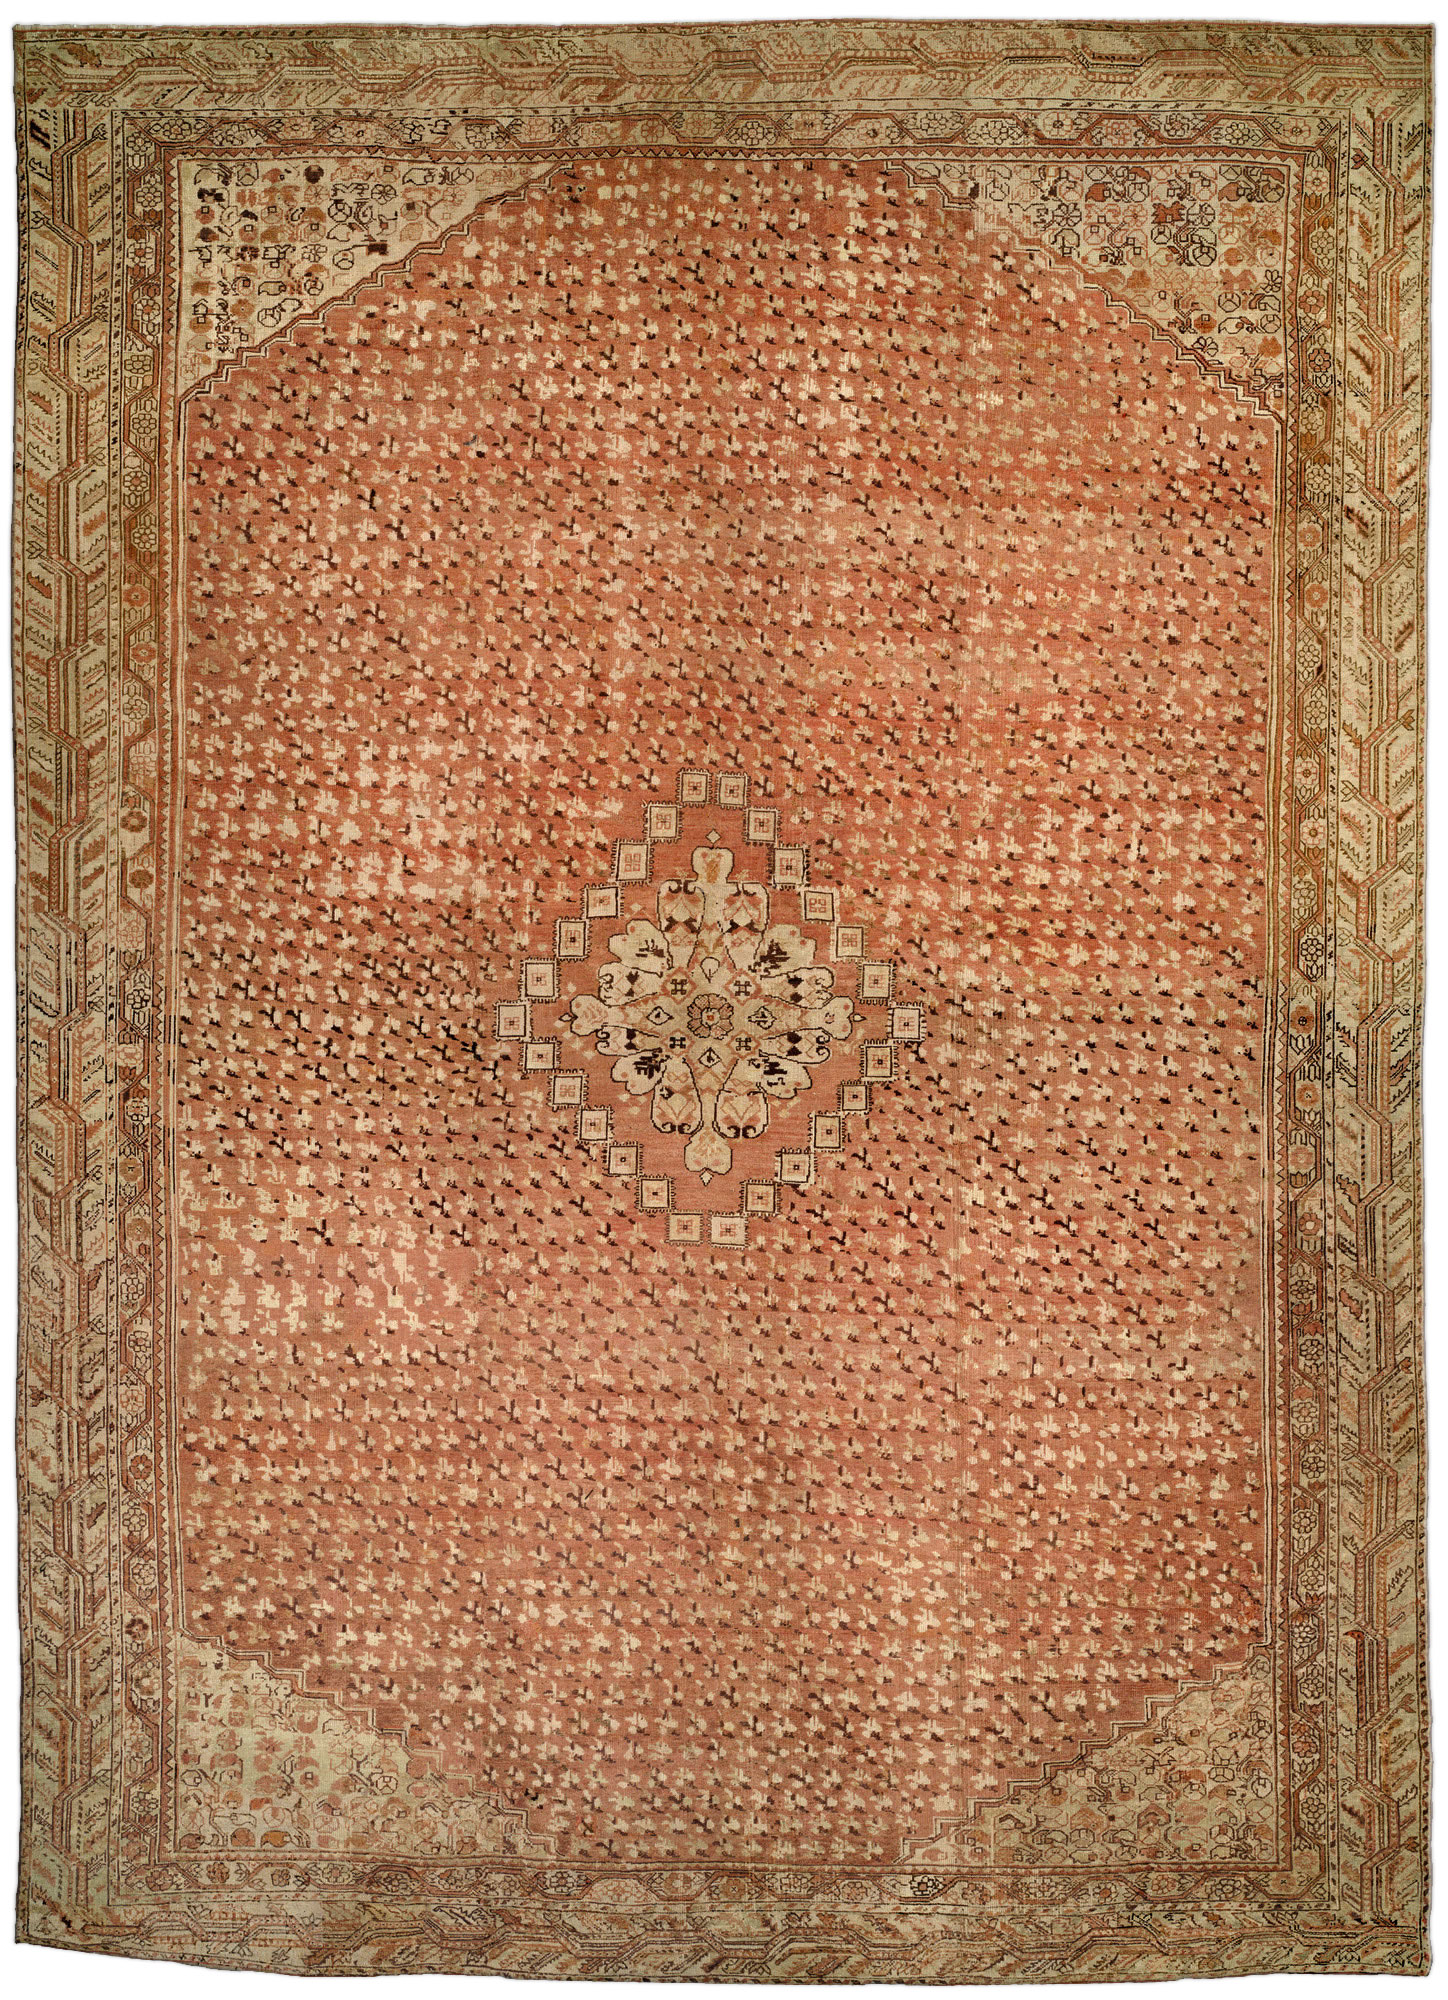 Antique Turkish Ghiordes Carpet BB0883